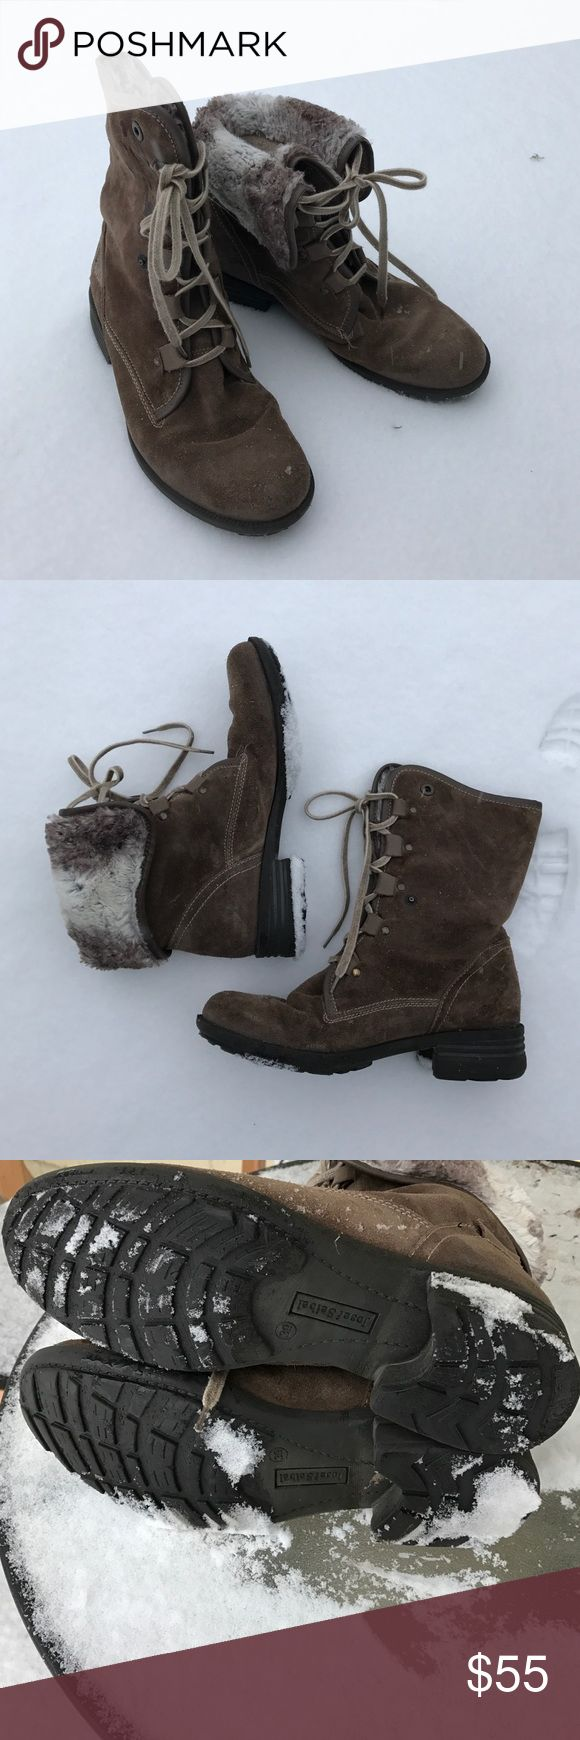 Josef Seibel suede cozy boot, 9/39 In great condition. No signs of wear. Convertible boot. Snaps into place. Extra comfortable! Josef Seibel Shoes